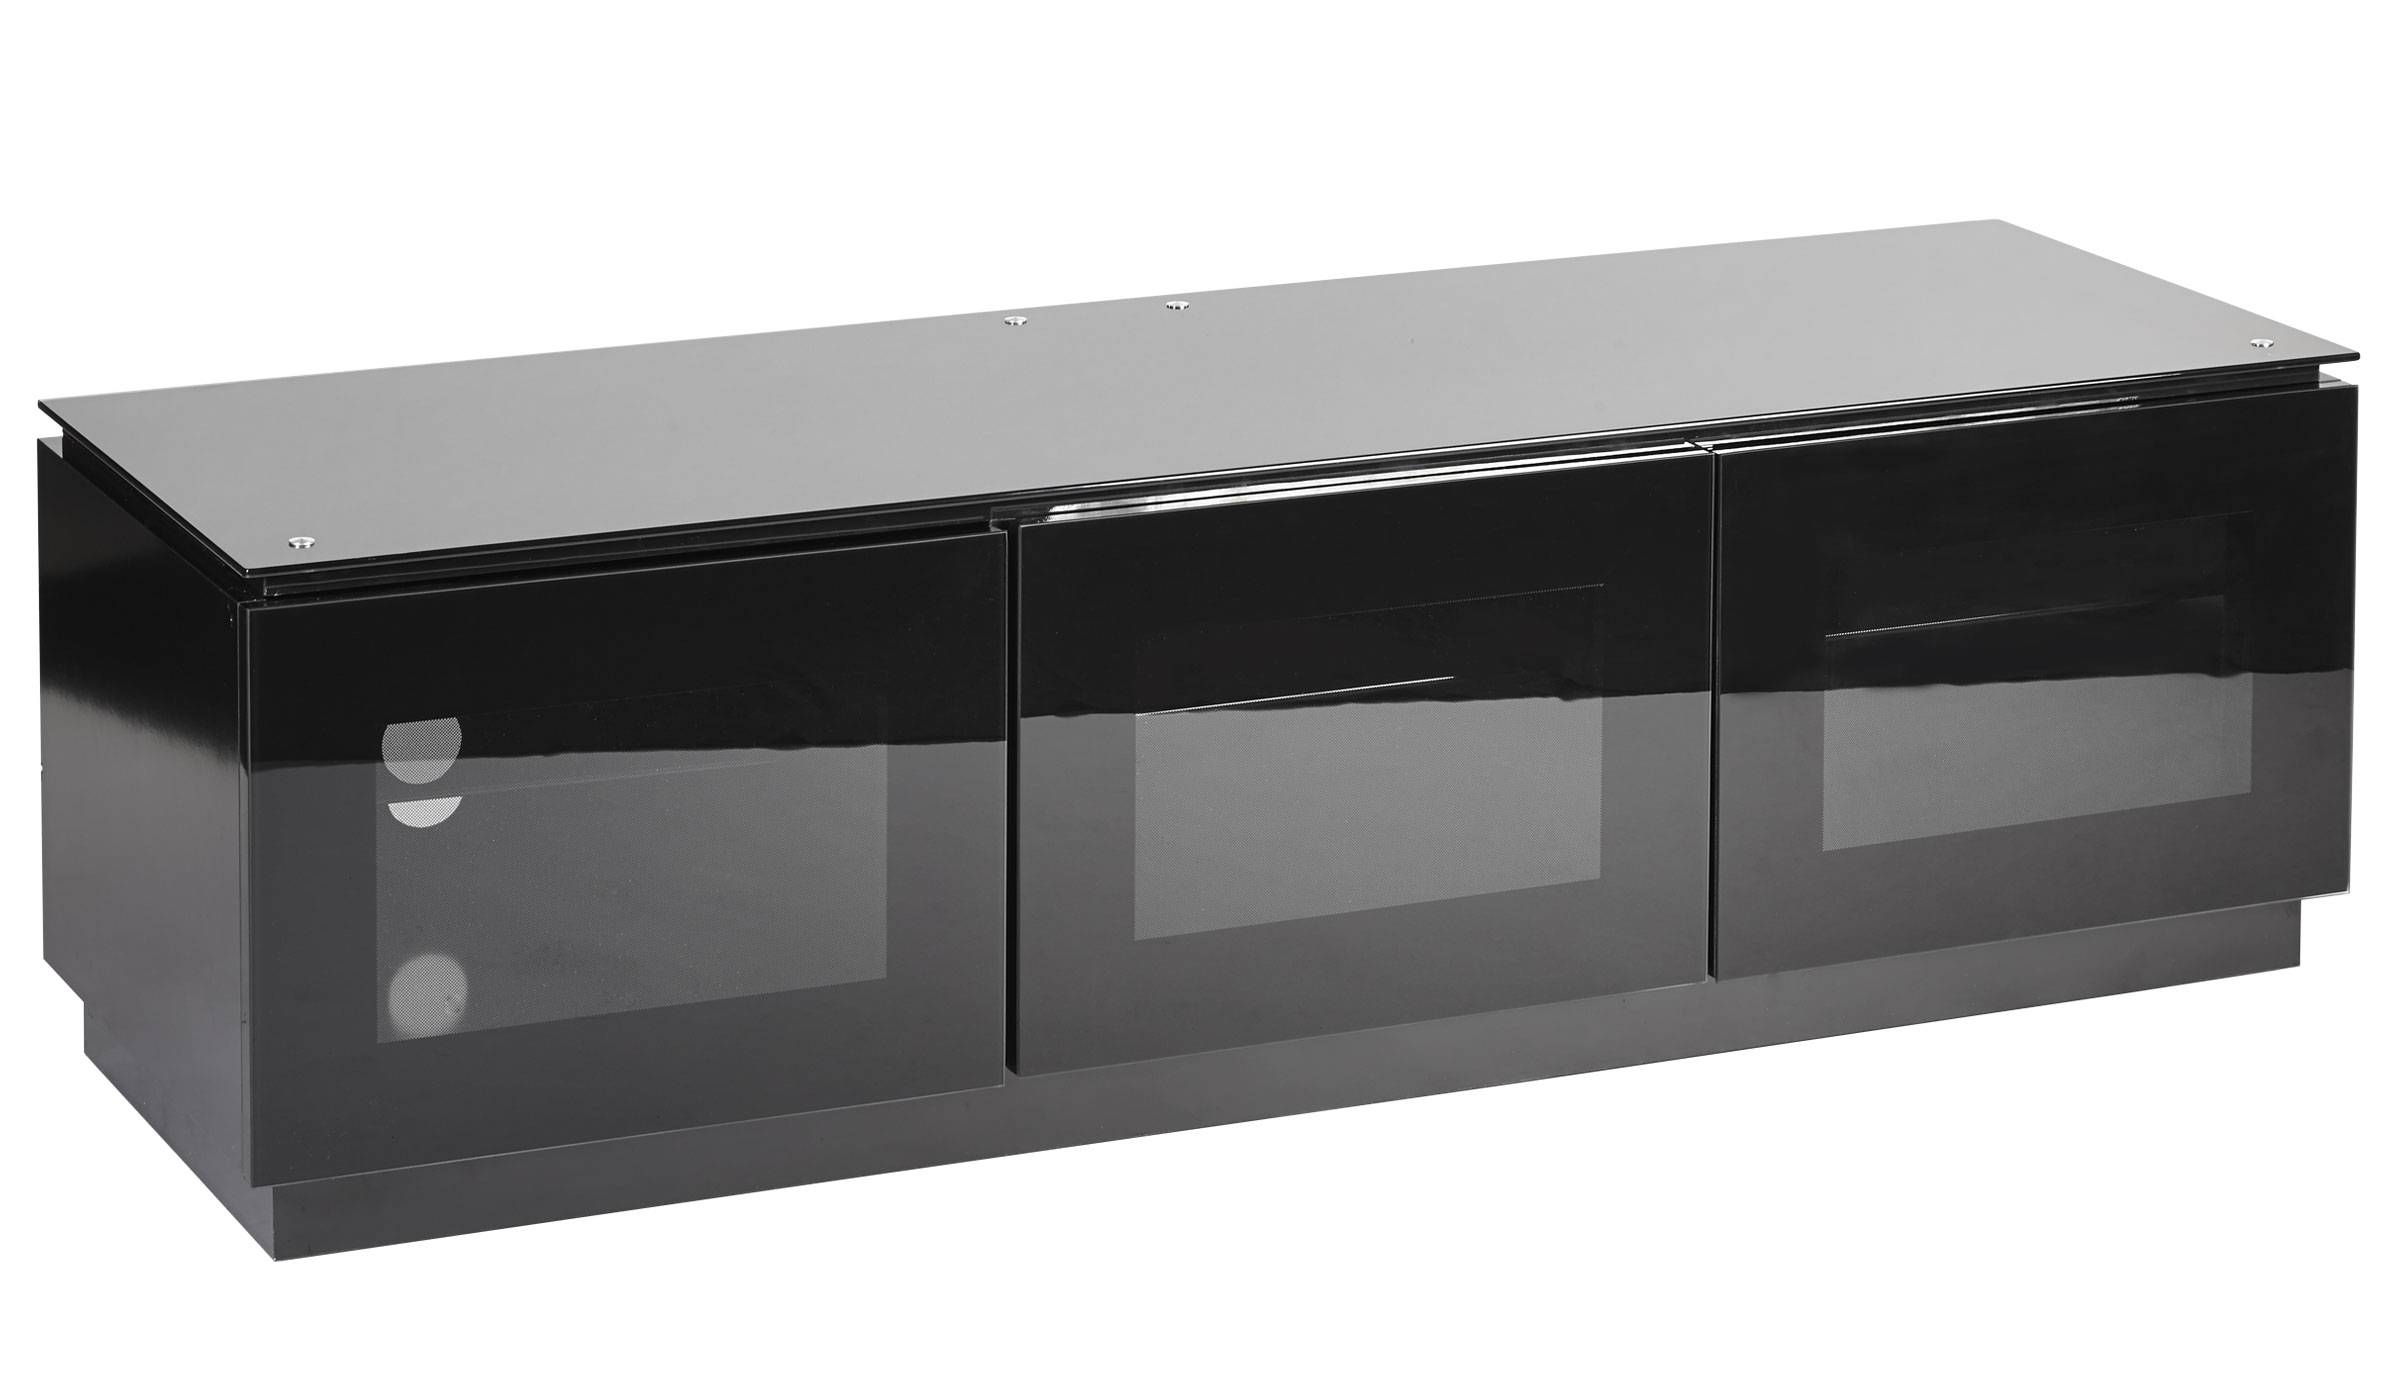 Black Gloss Tv Unit Up To 65 Inch Flat Tv | Mmt-D1500 regarding Glass Tv Cabinets With Doors (Image 4 of 15)